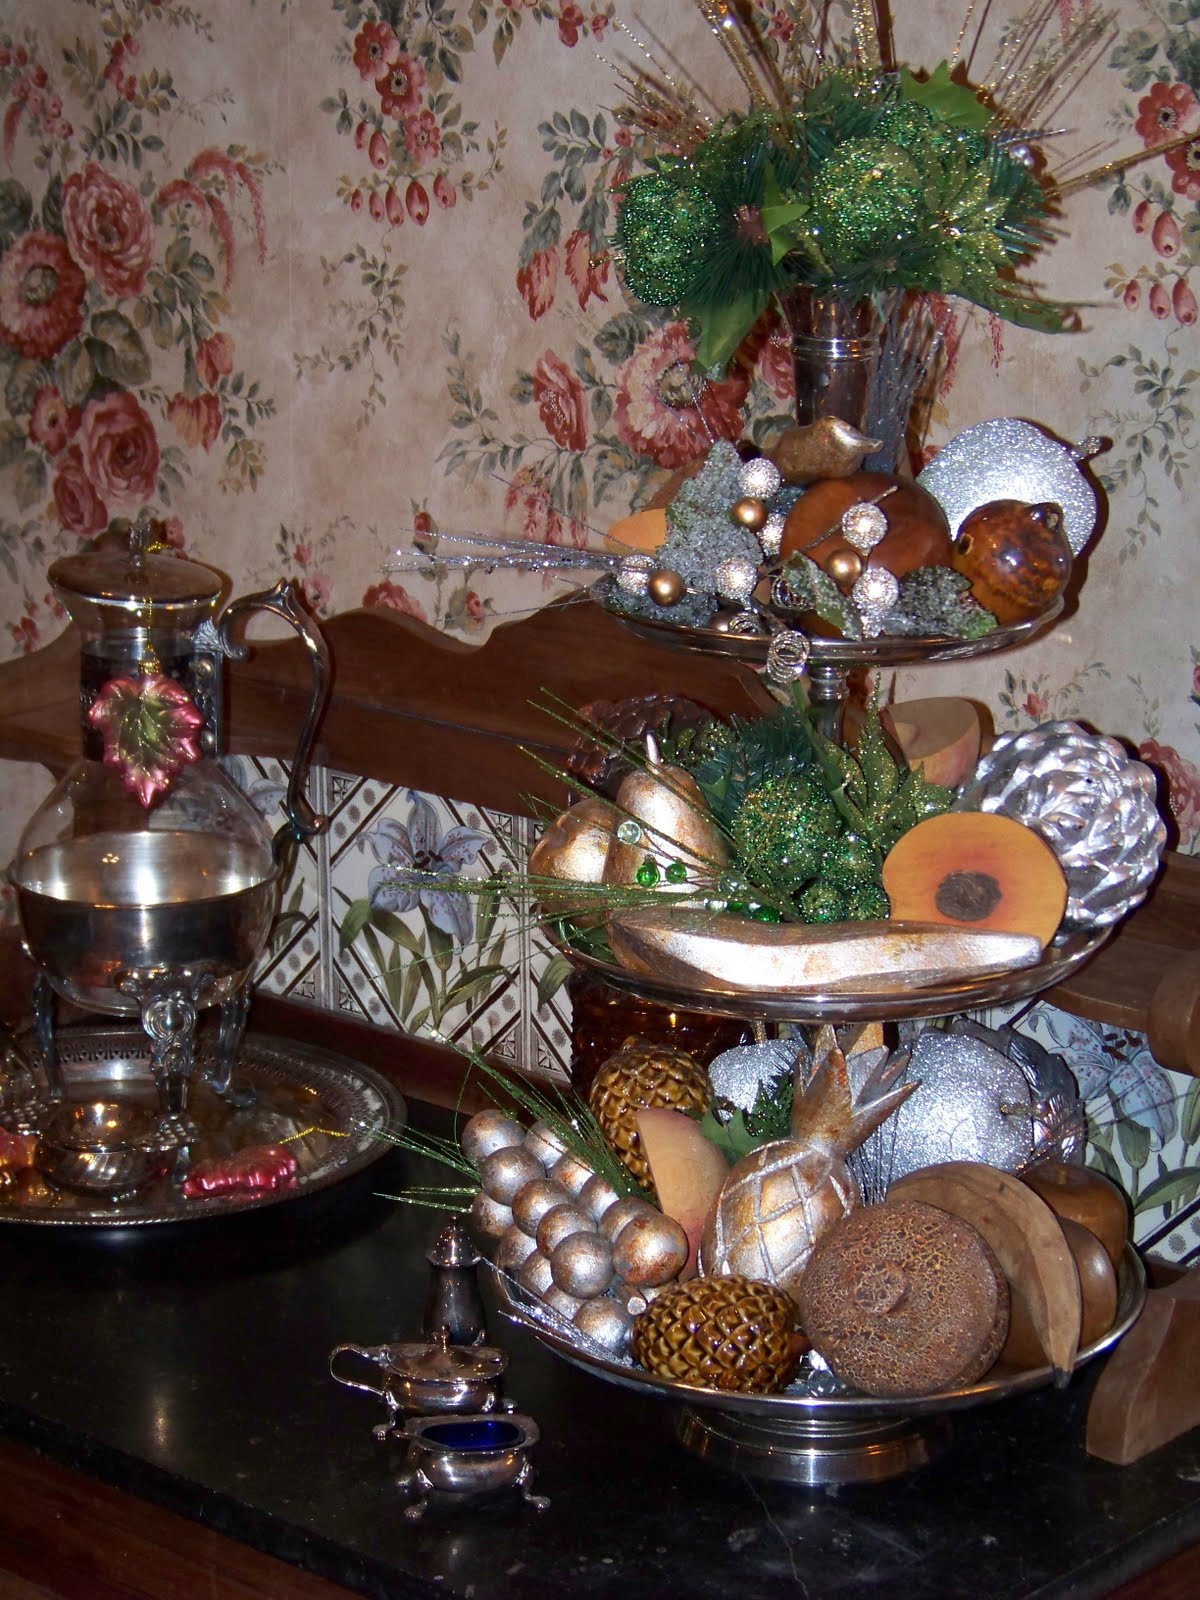 In a couple of days I will put up another post from the Holiday Tables